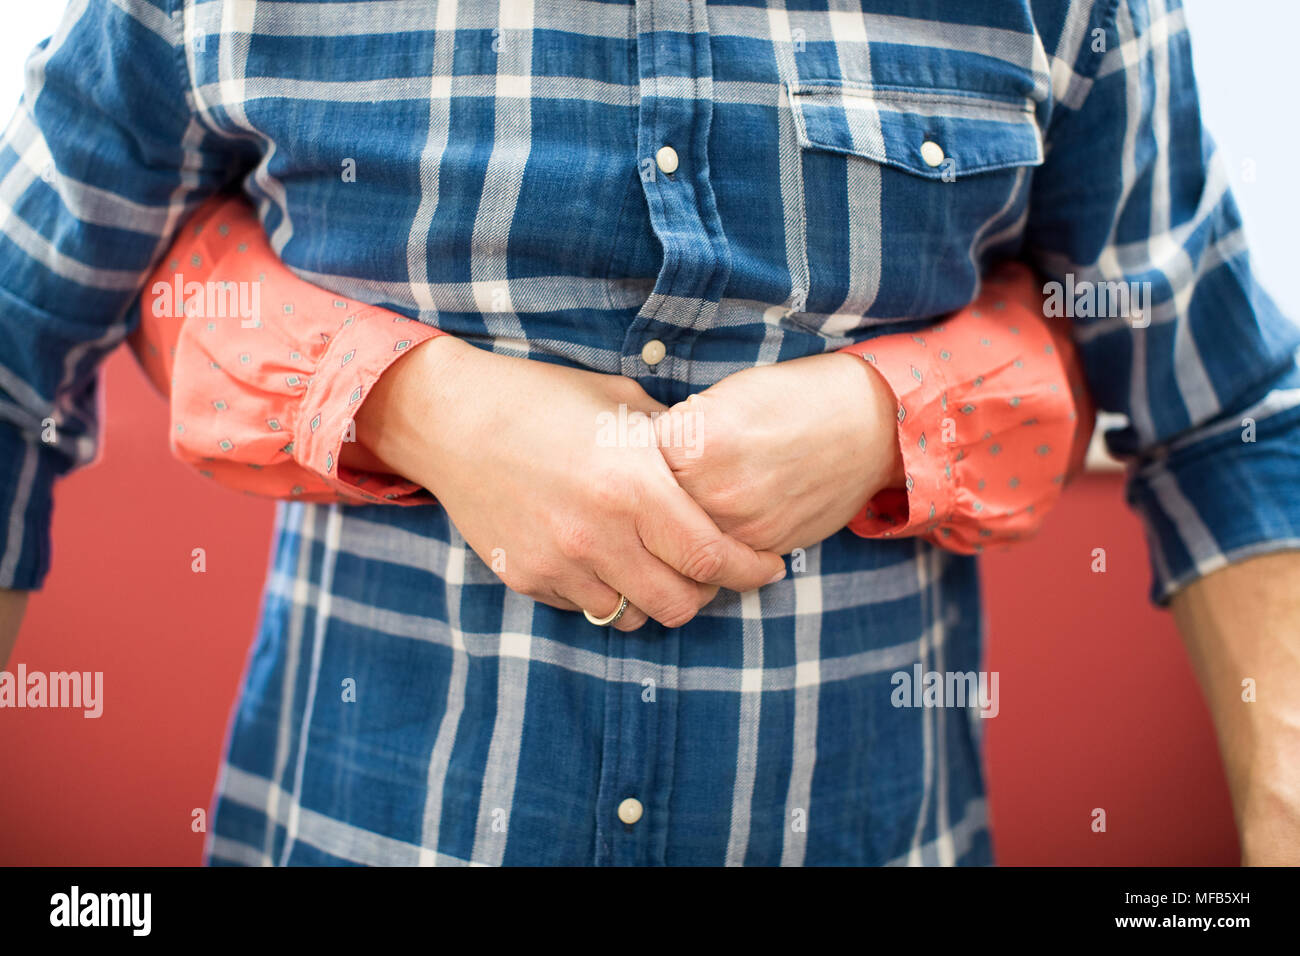 Close Up Of Woman Demonstrating Heimlich Maneuver In First Aid Class - Stock Image